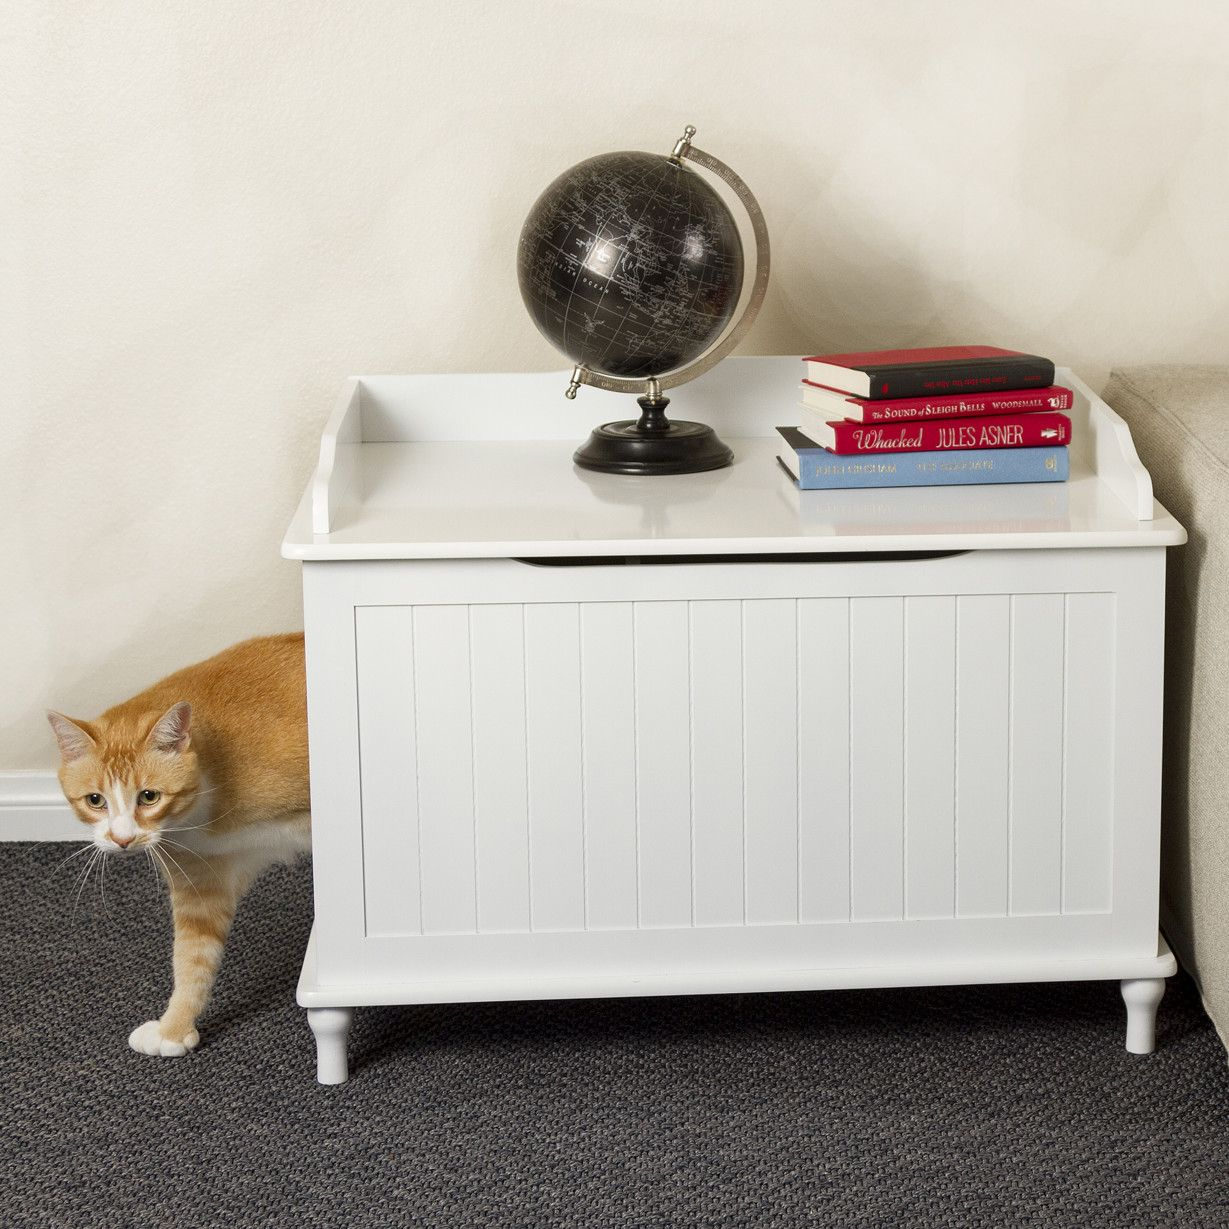 Shop Wayfair for Litter Boxes & Enclosures to match every